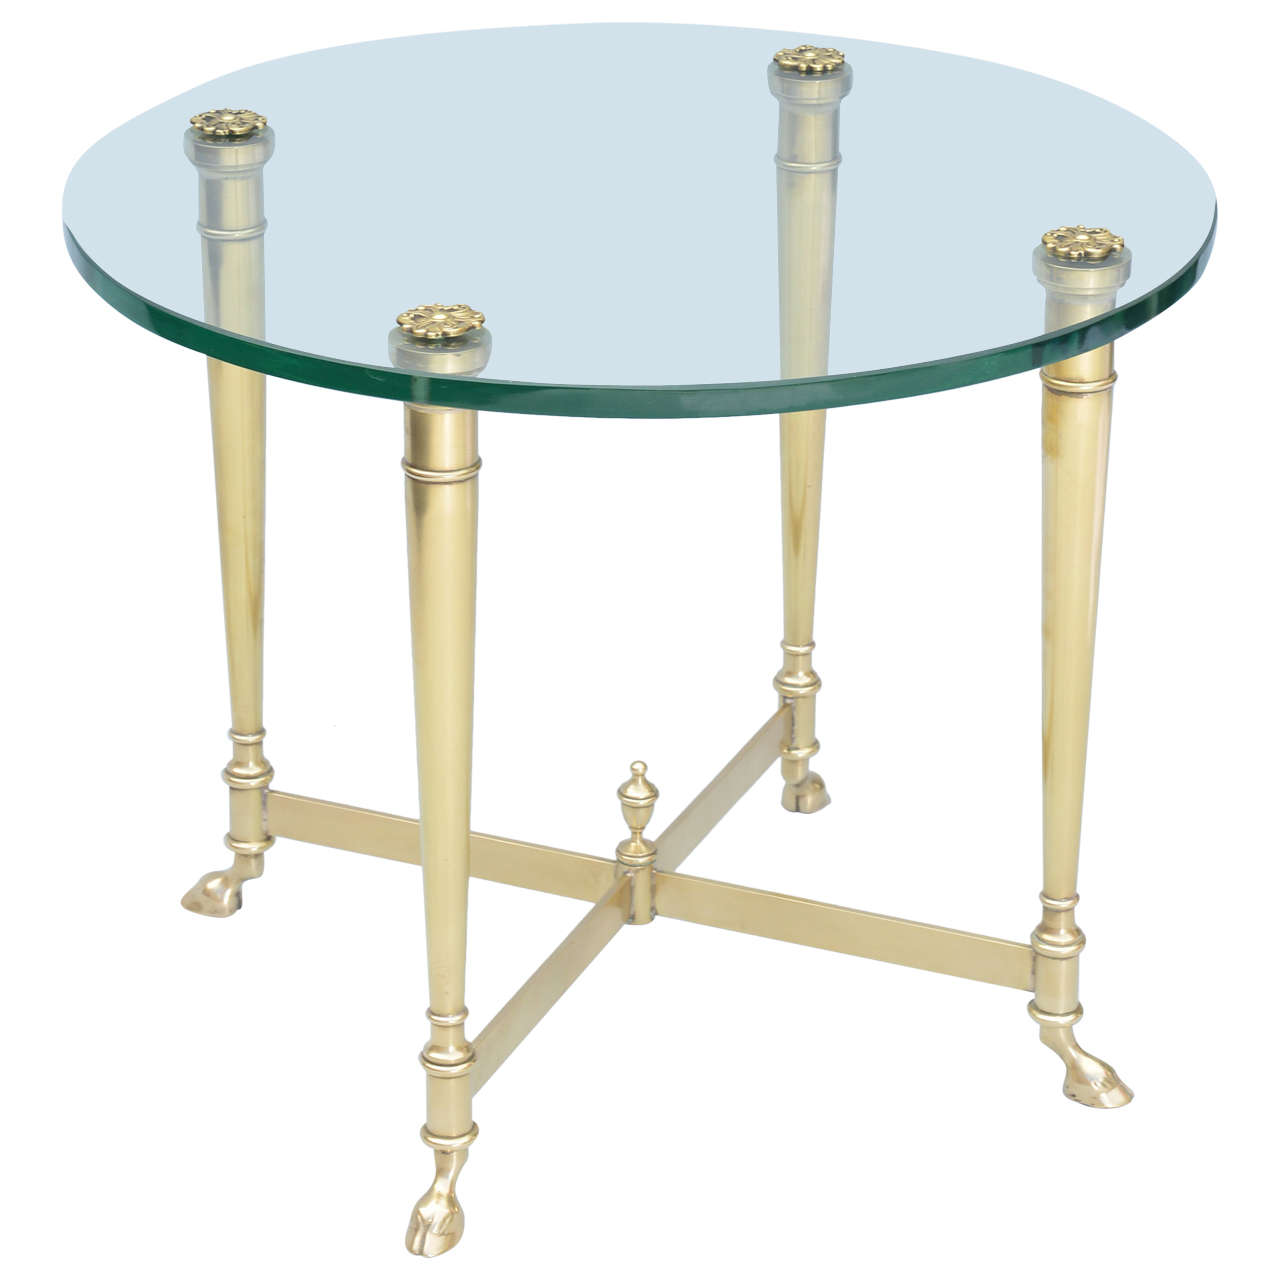 Polished brass end table with glass top on hoffed feet for Glass end tables